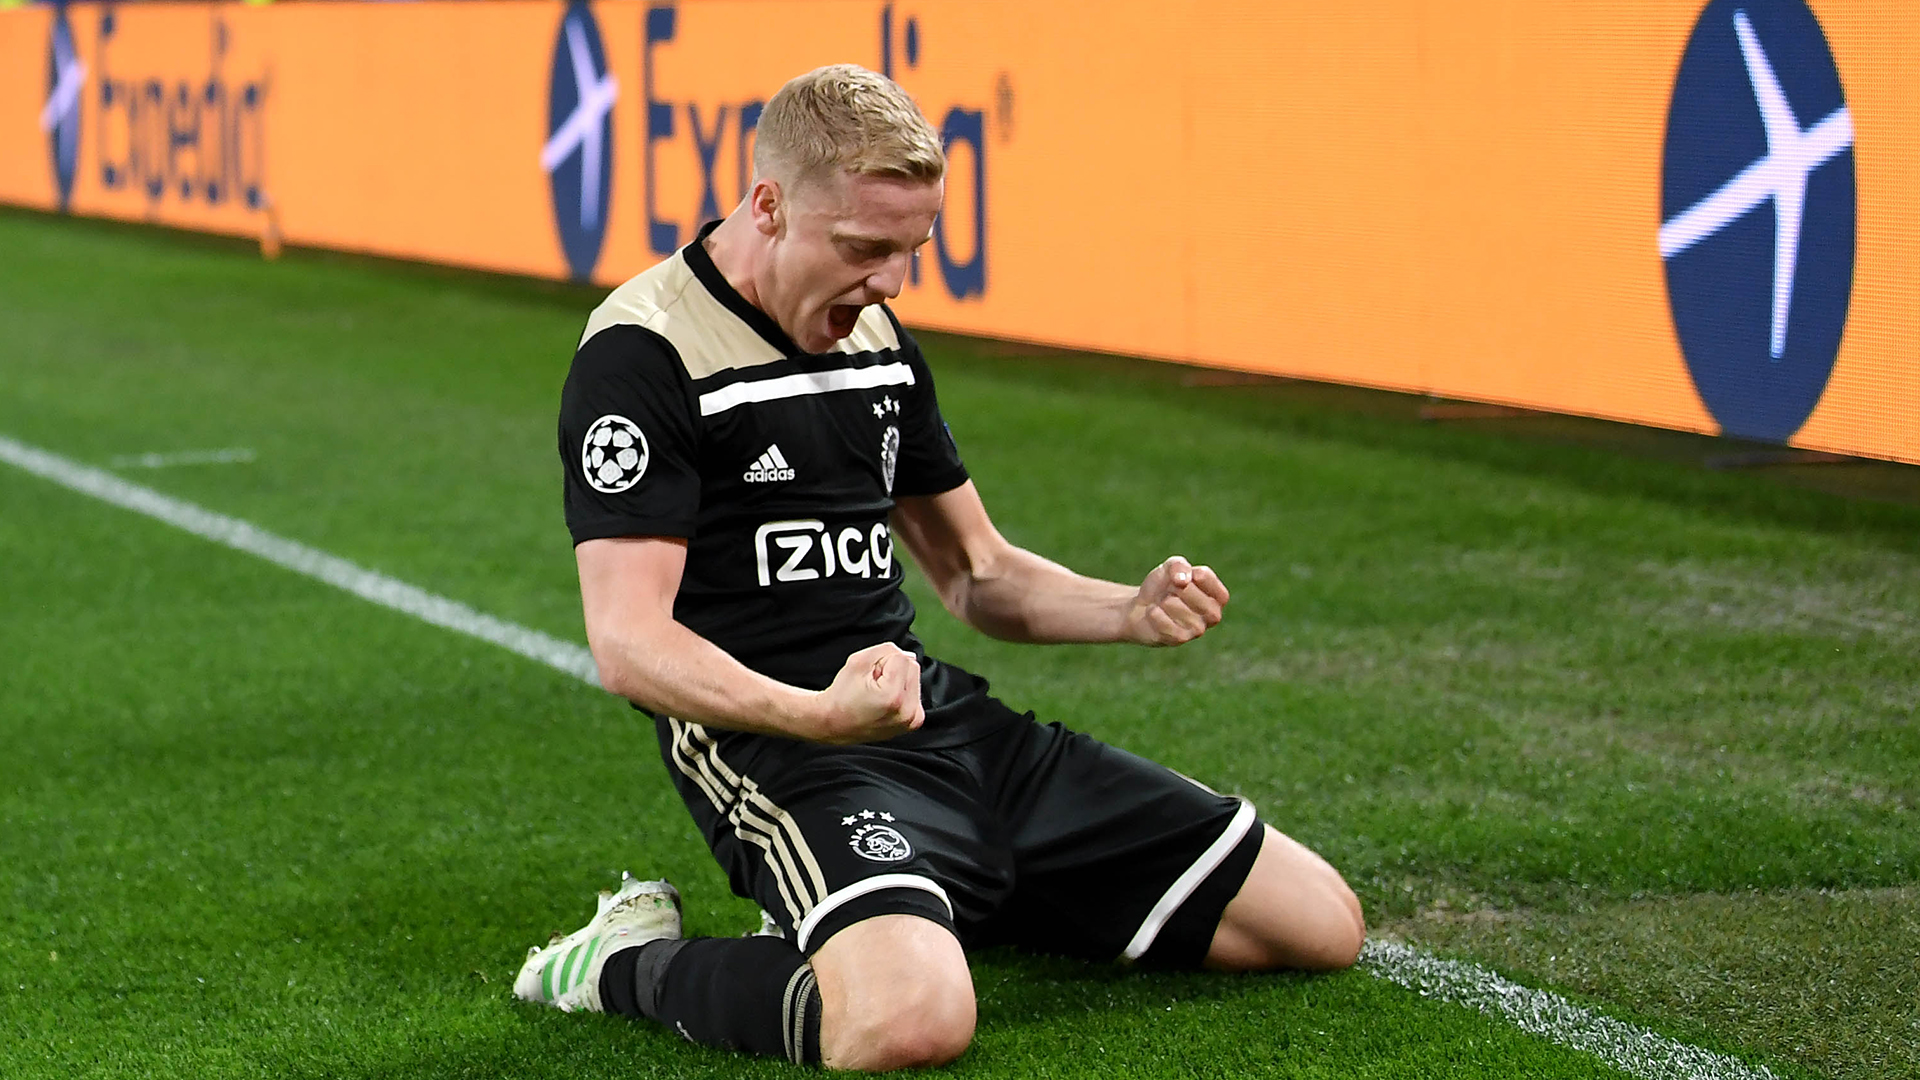 Mercato - Ajax : Donny Van de Beek confirme un intérêt du Real Madrid